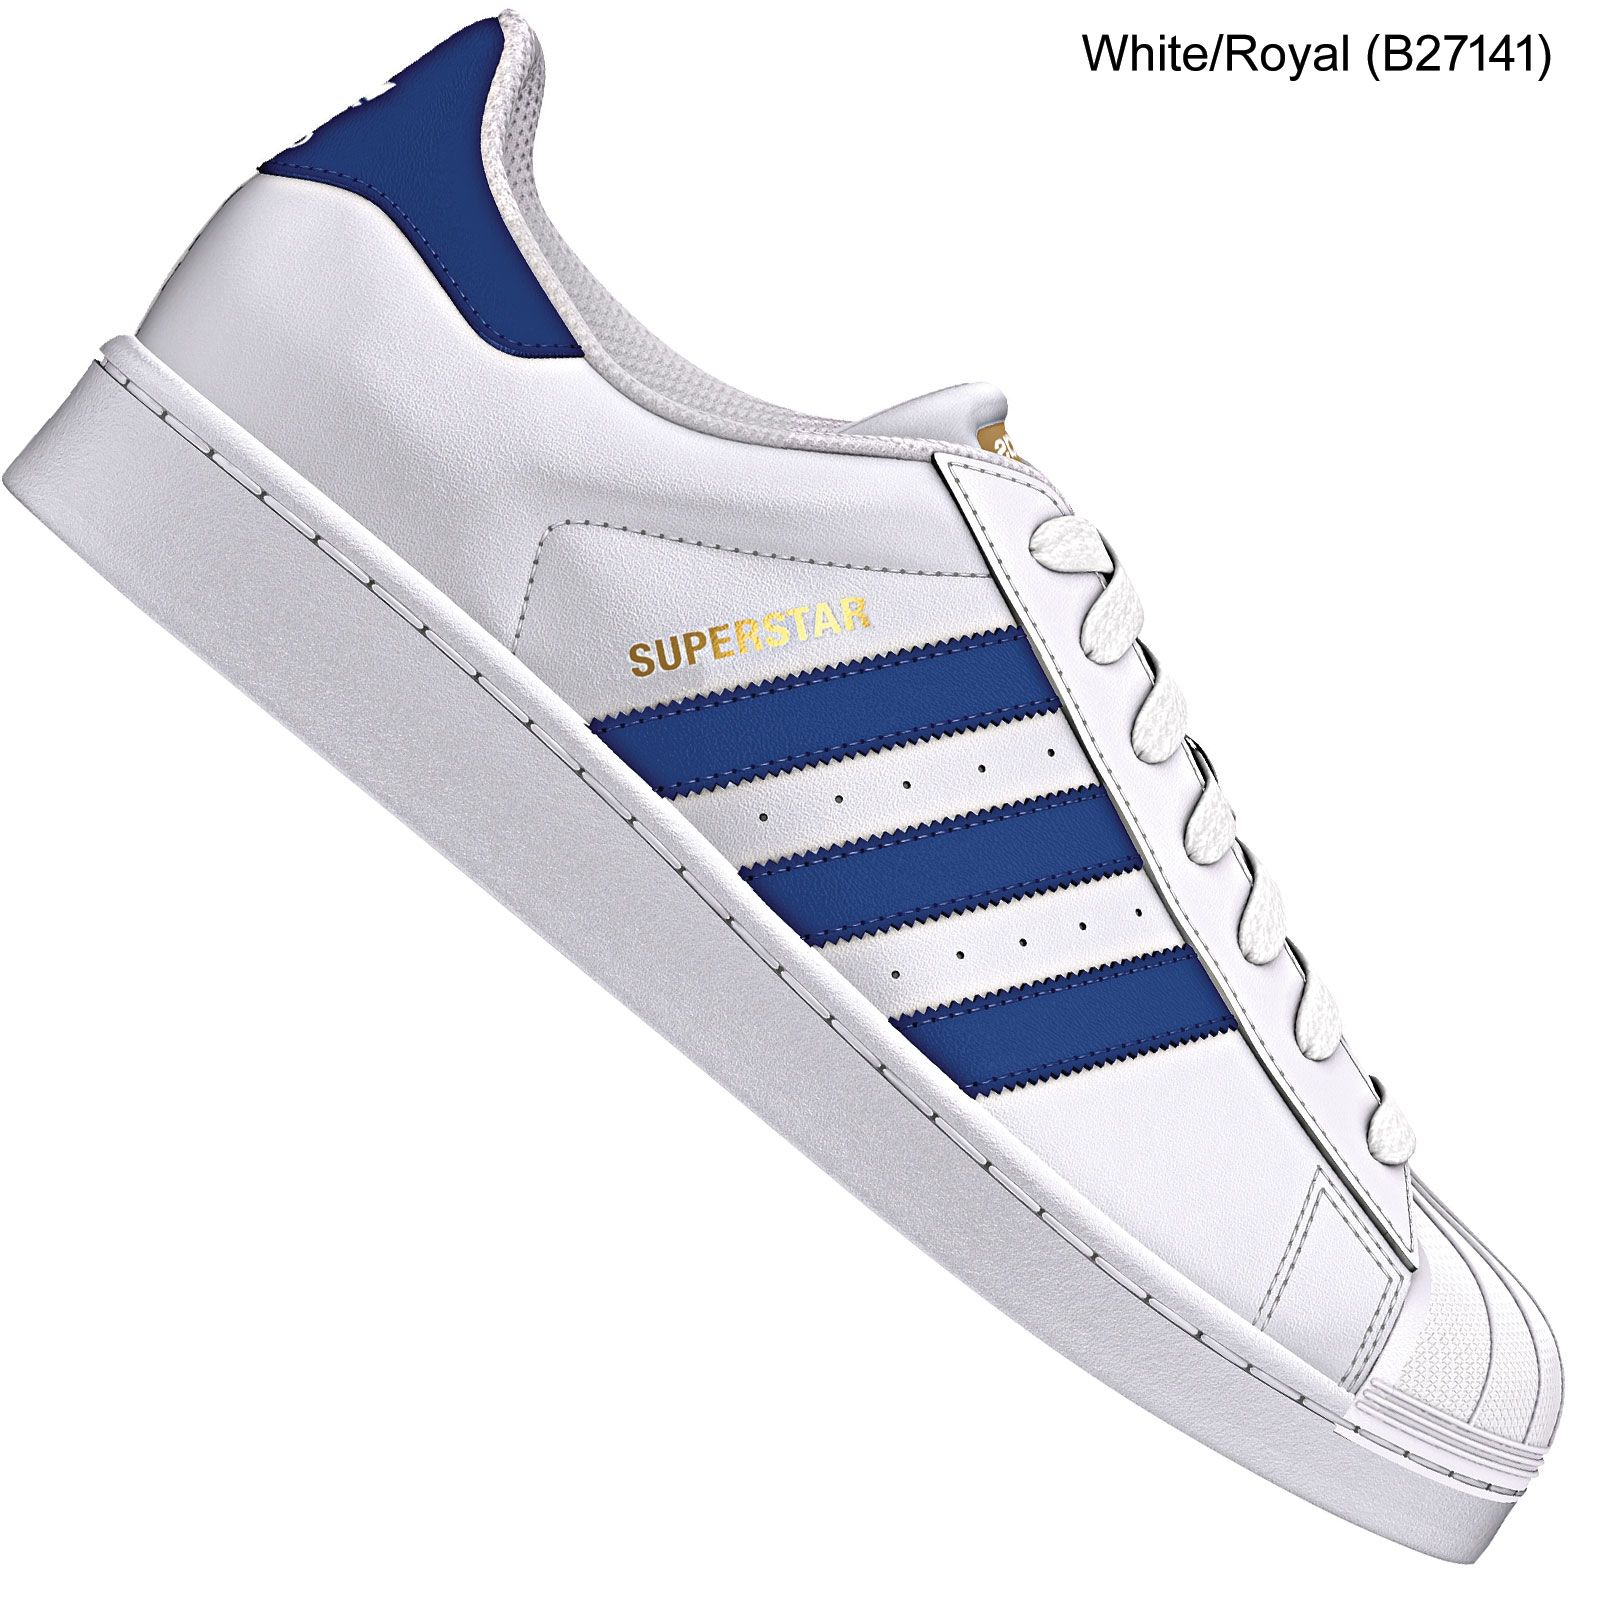 Adidas-Superstar-2-Originals-Damen-Kinder-Sneaker-Freizeit ...